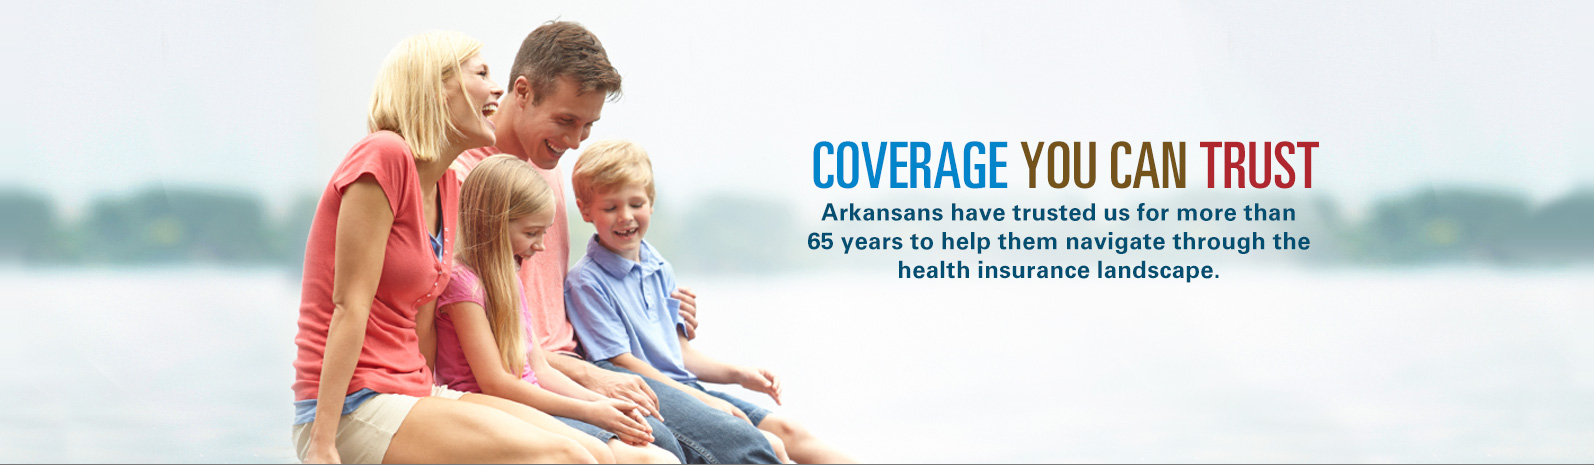 Arkansans have trusted us for more than 65 years to help them navigate through the health insurance landscape.